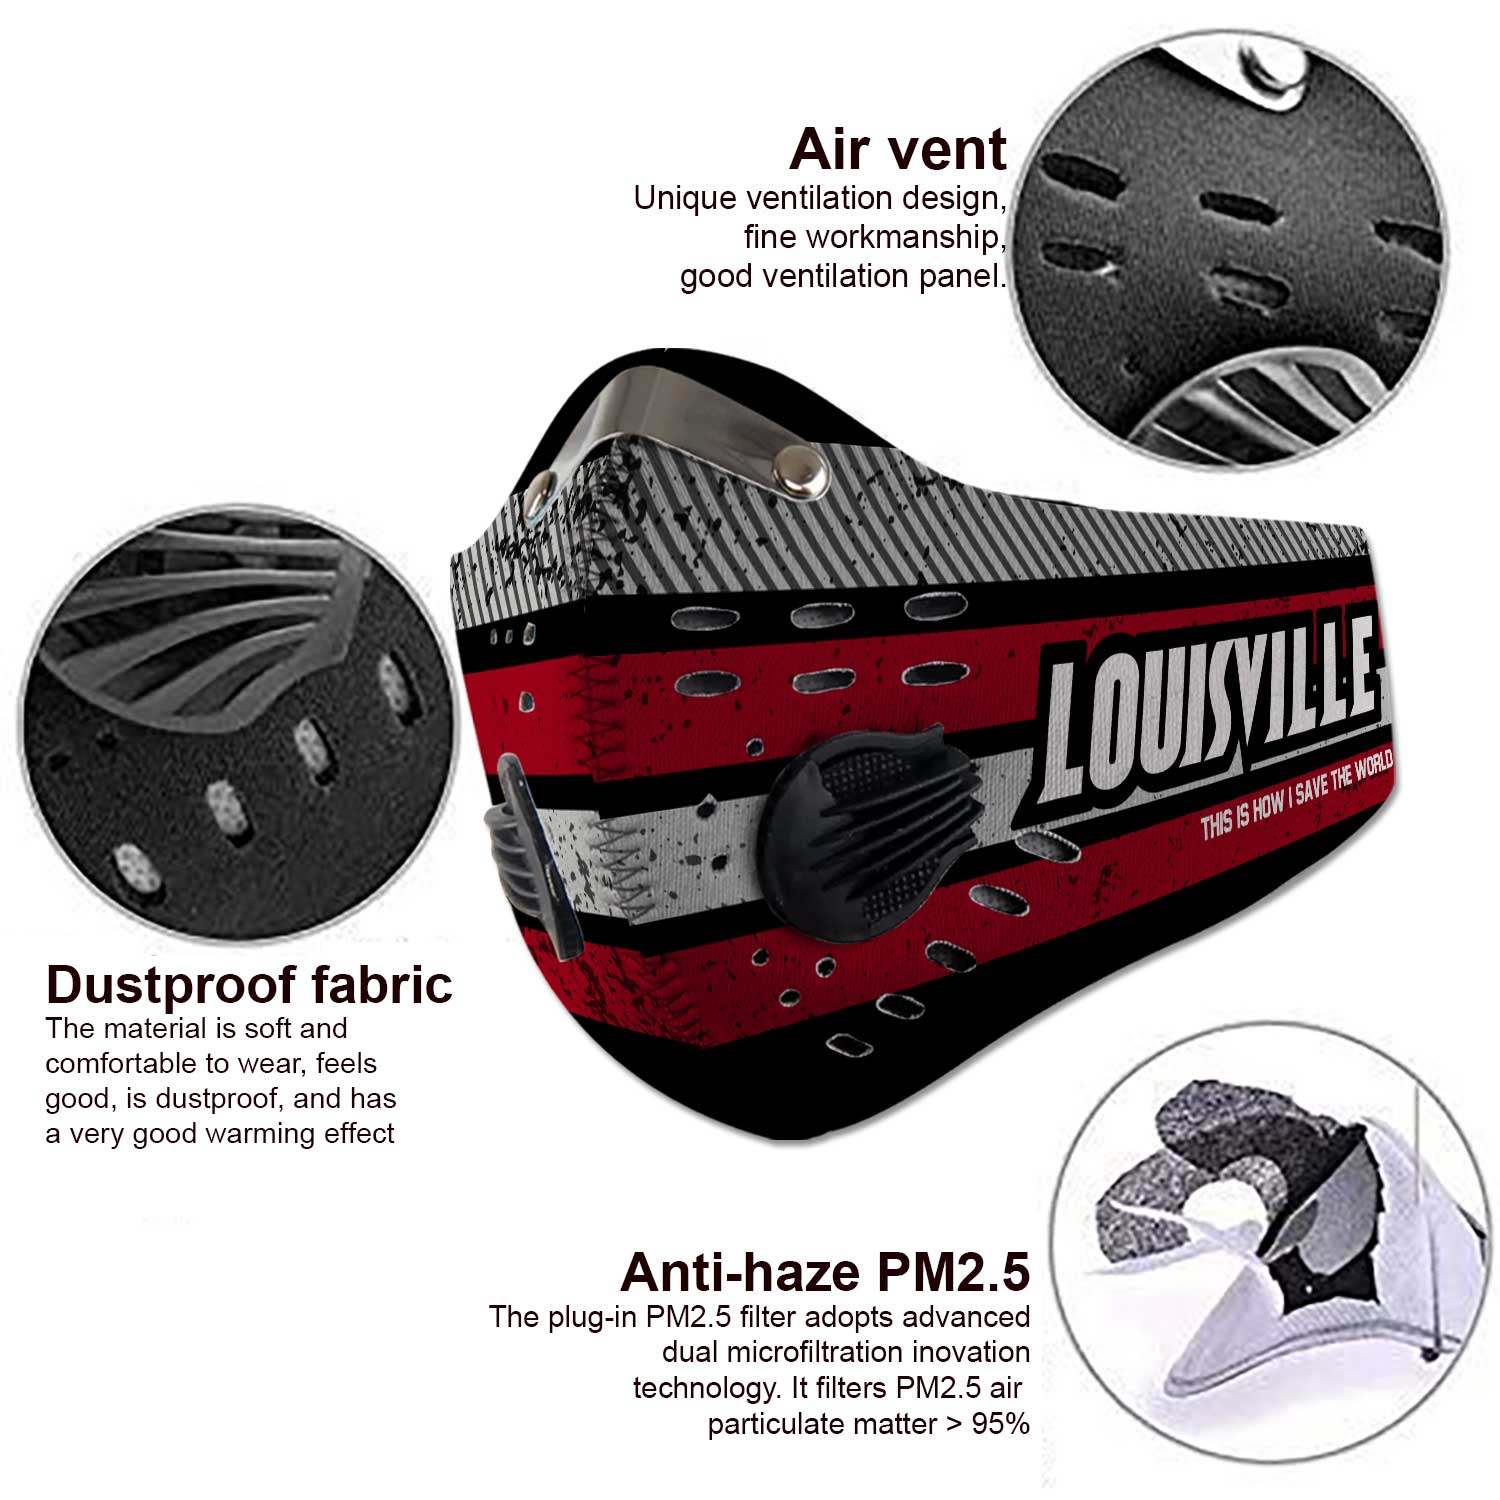 Louisville cardinals this is how i save the world carbon filter face mask 3